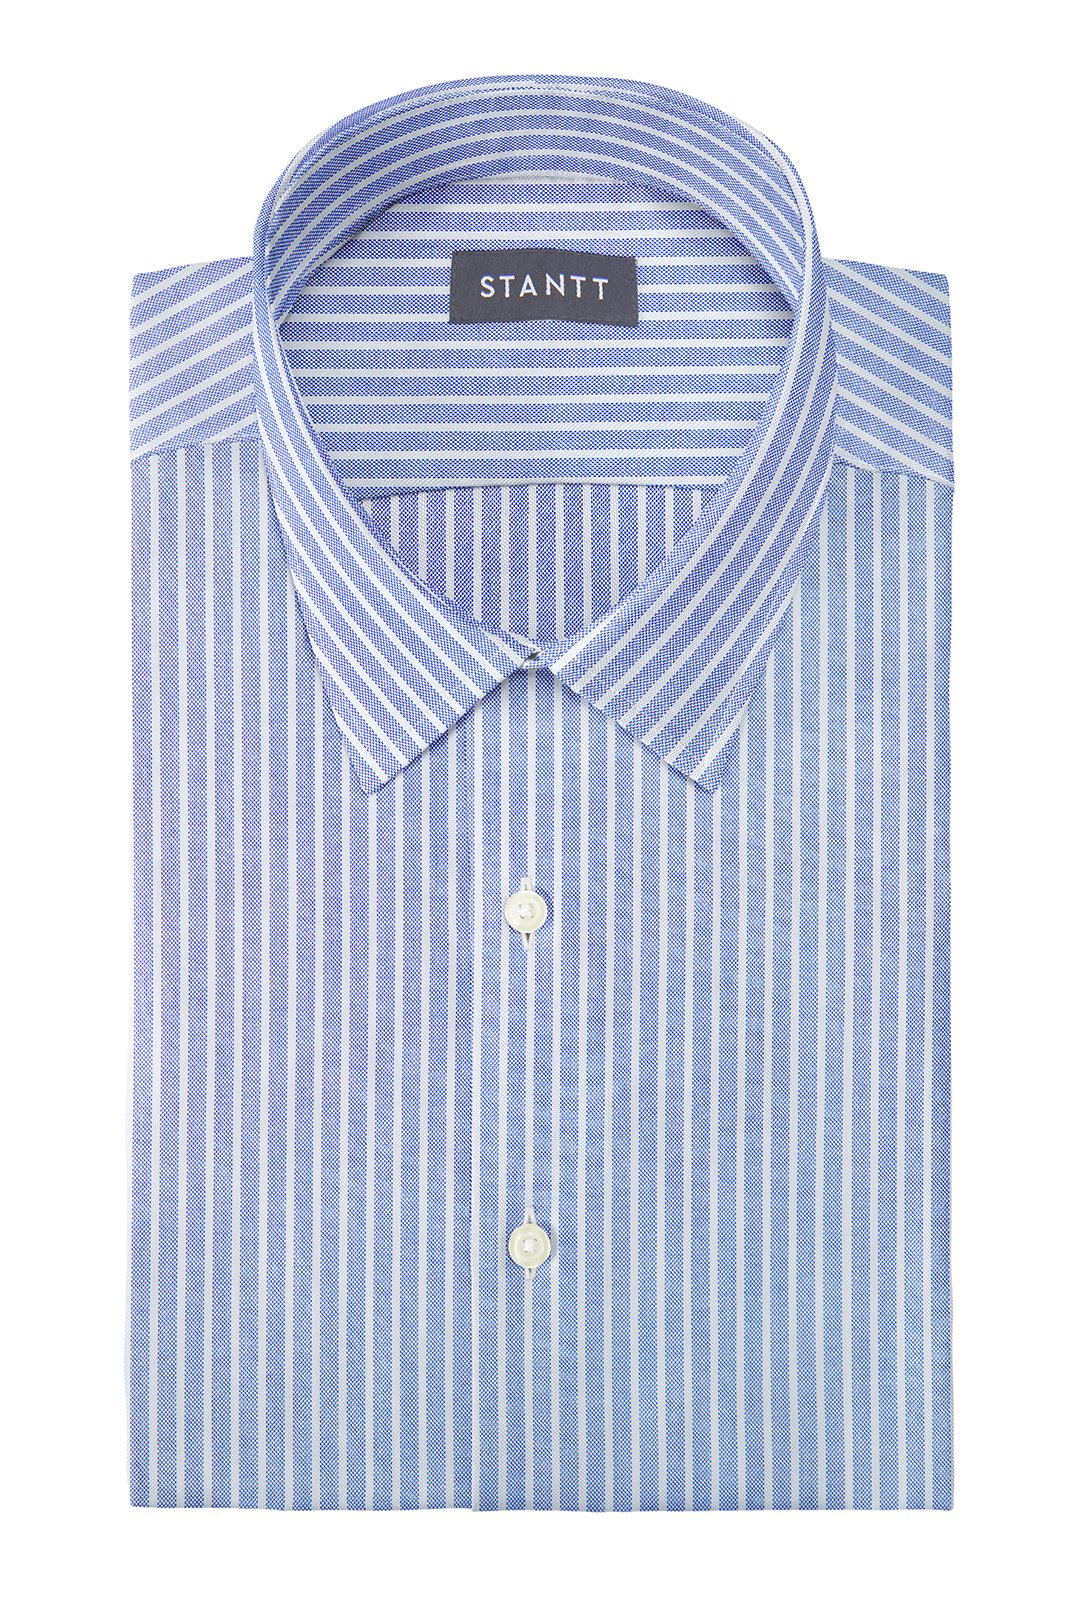 Reverse Blue Oxford Stripe: Semi-Spread Collar, Barrel Cuff